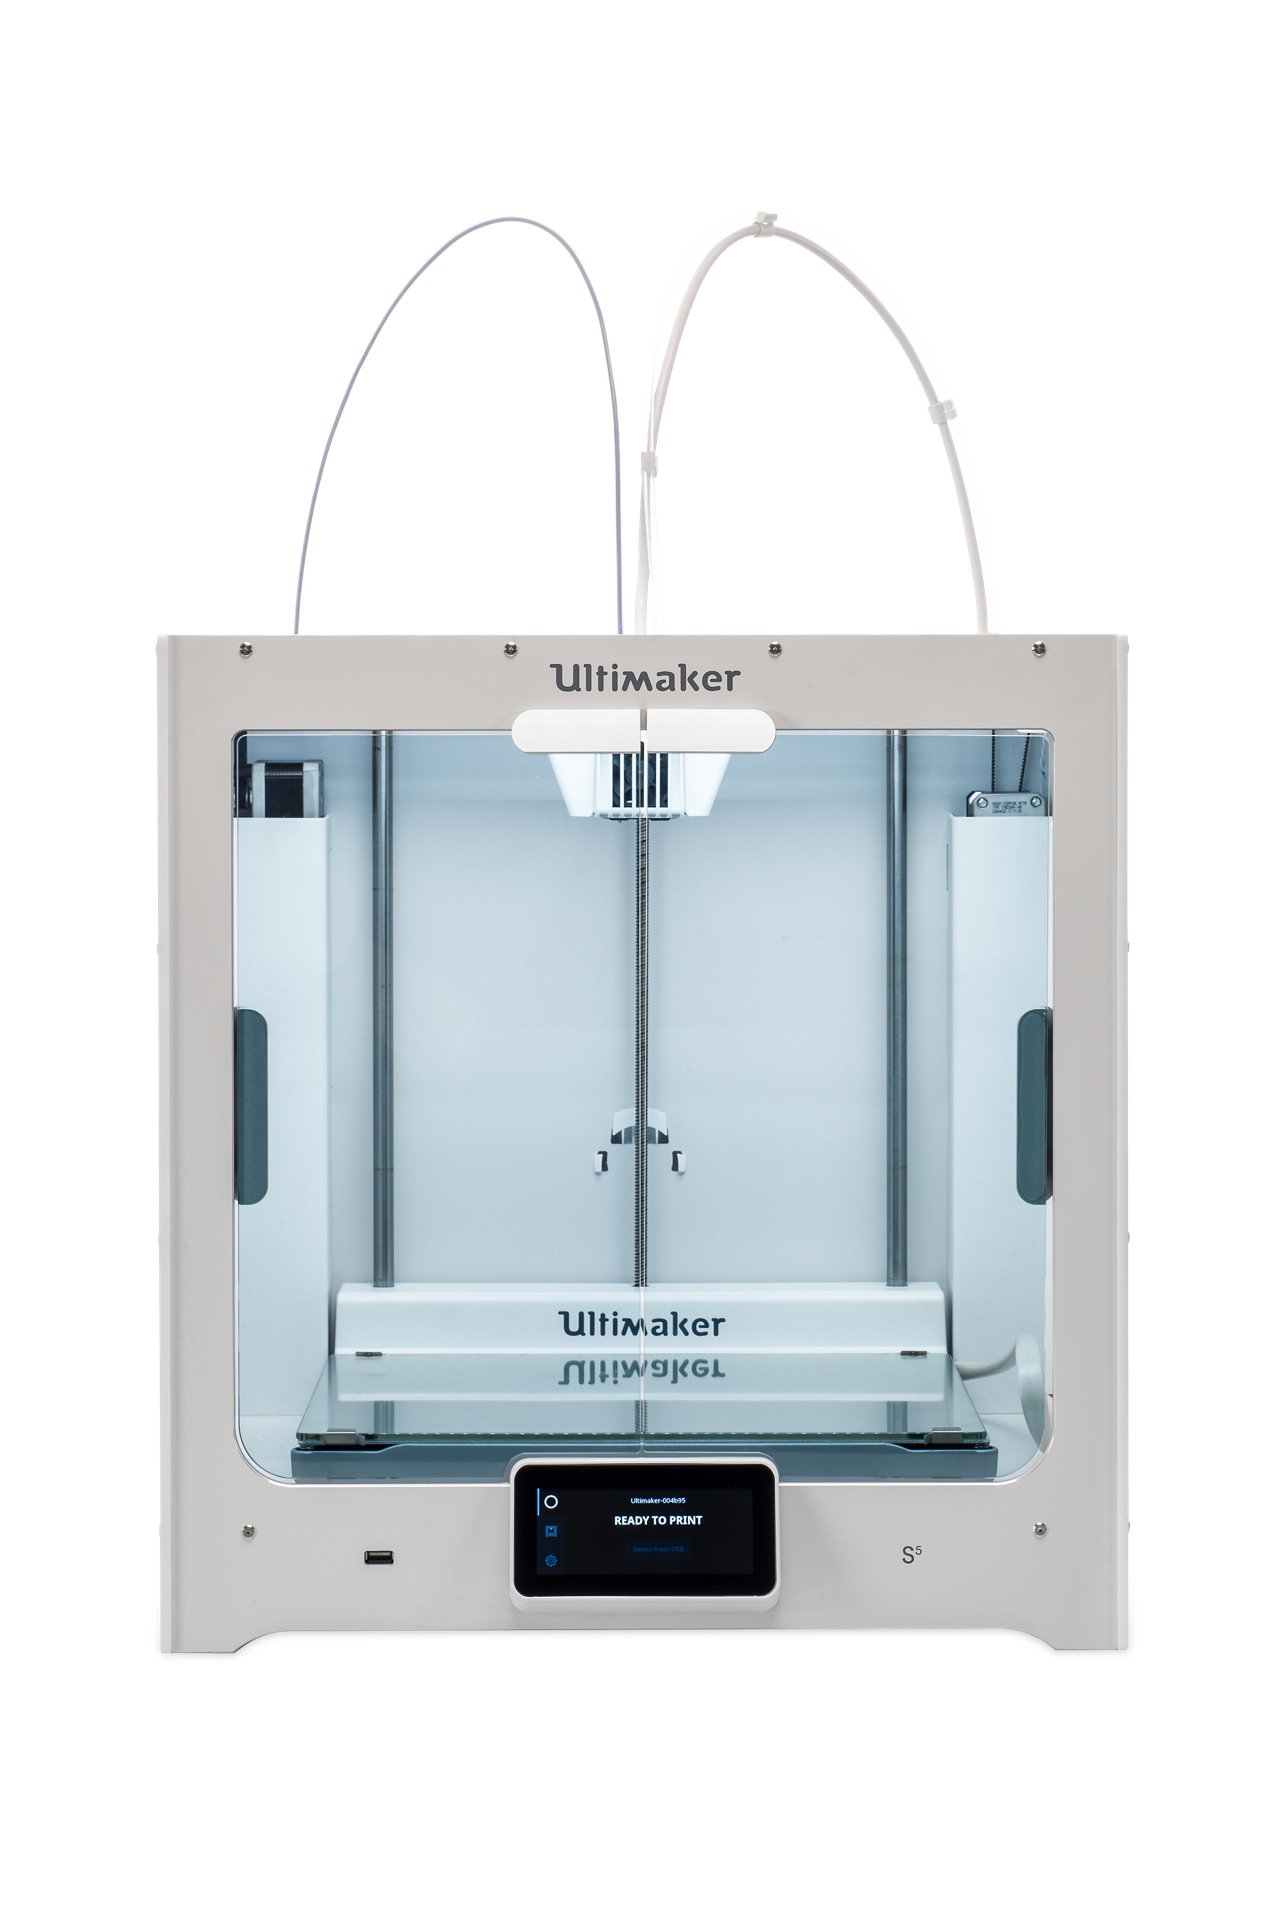 Ultimaker S5 ultimaker, ultimaker 2, ultimaker 3d printer, makerbot, up, flashforge,